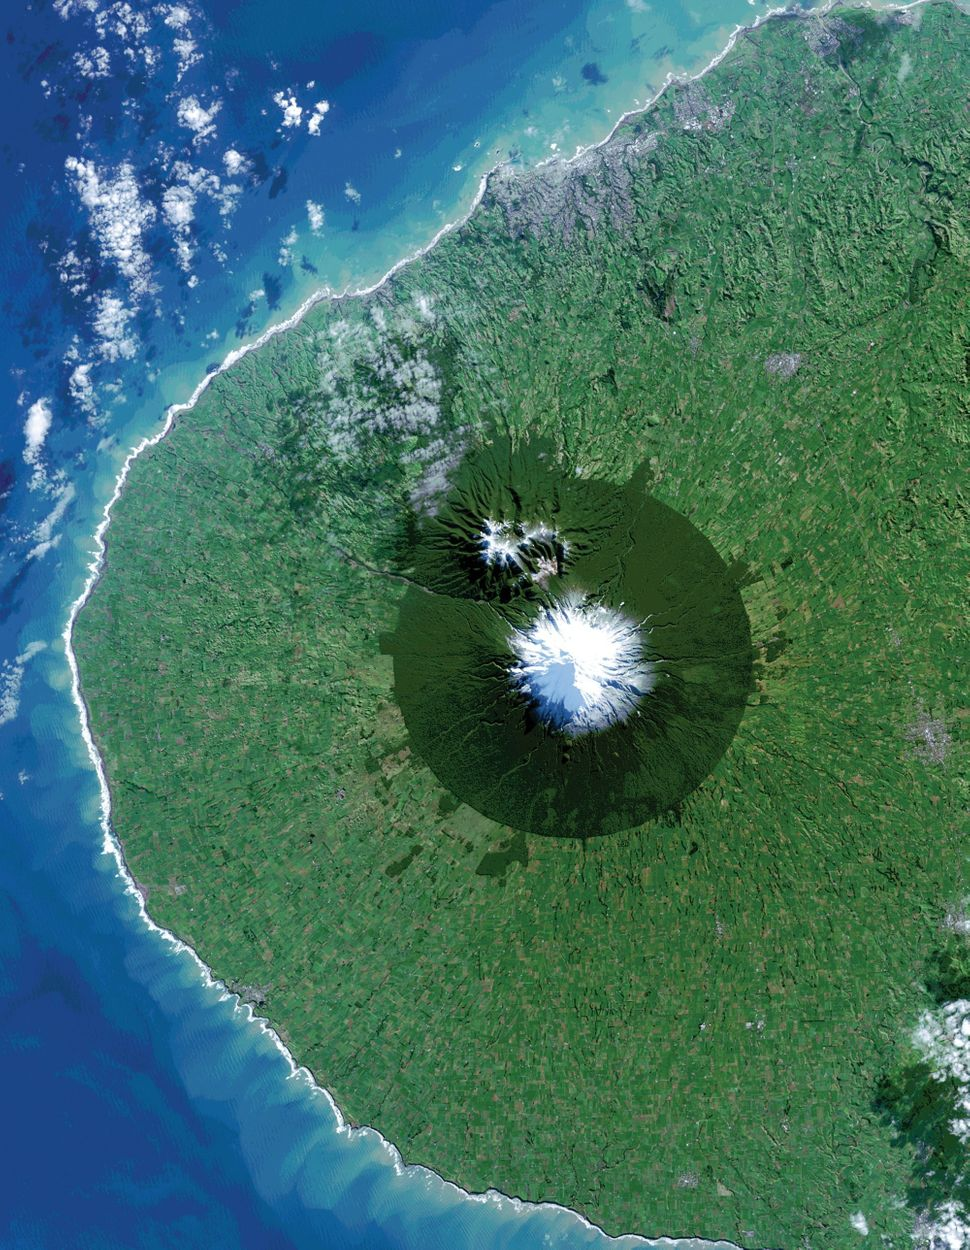 An aerial view of Egmont National Park in New Zealand.